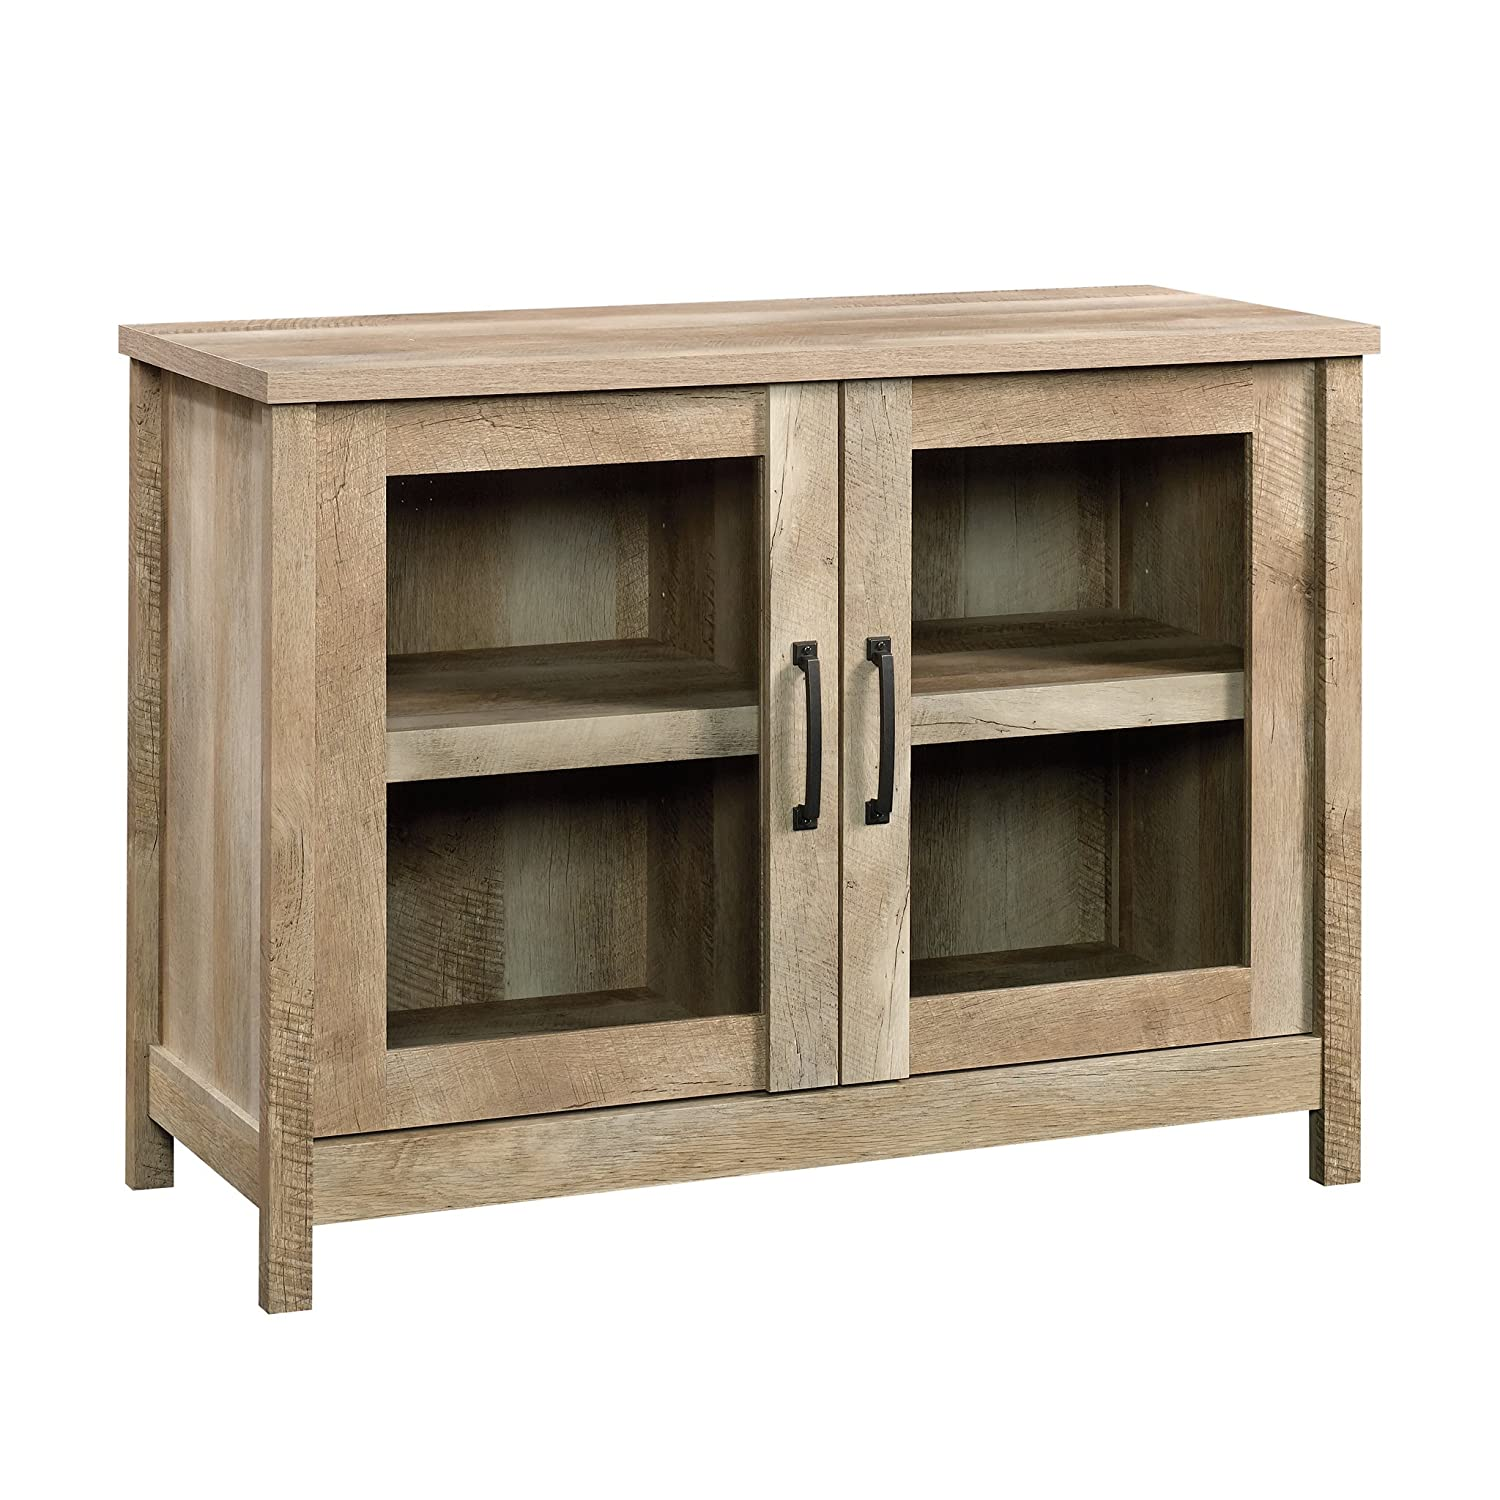 Sauder Cannery Bridge Display Cabinet, For TV s up to 42 Lintel Oak finish